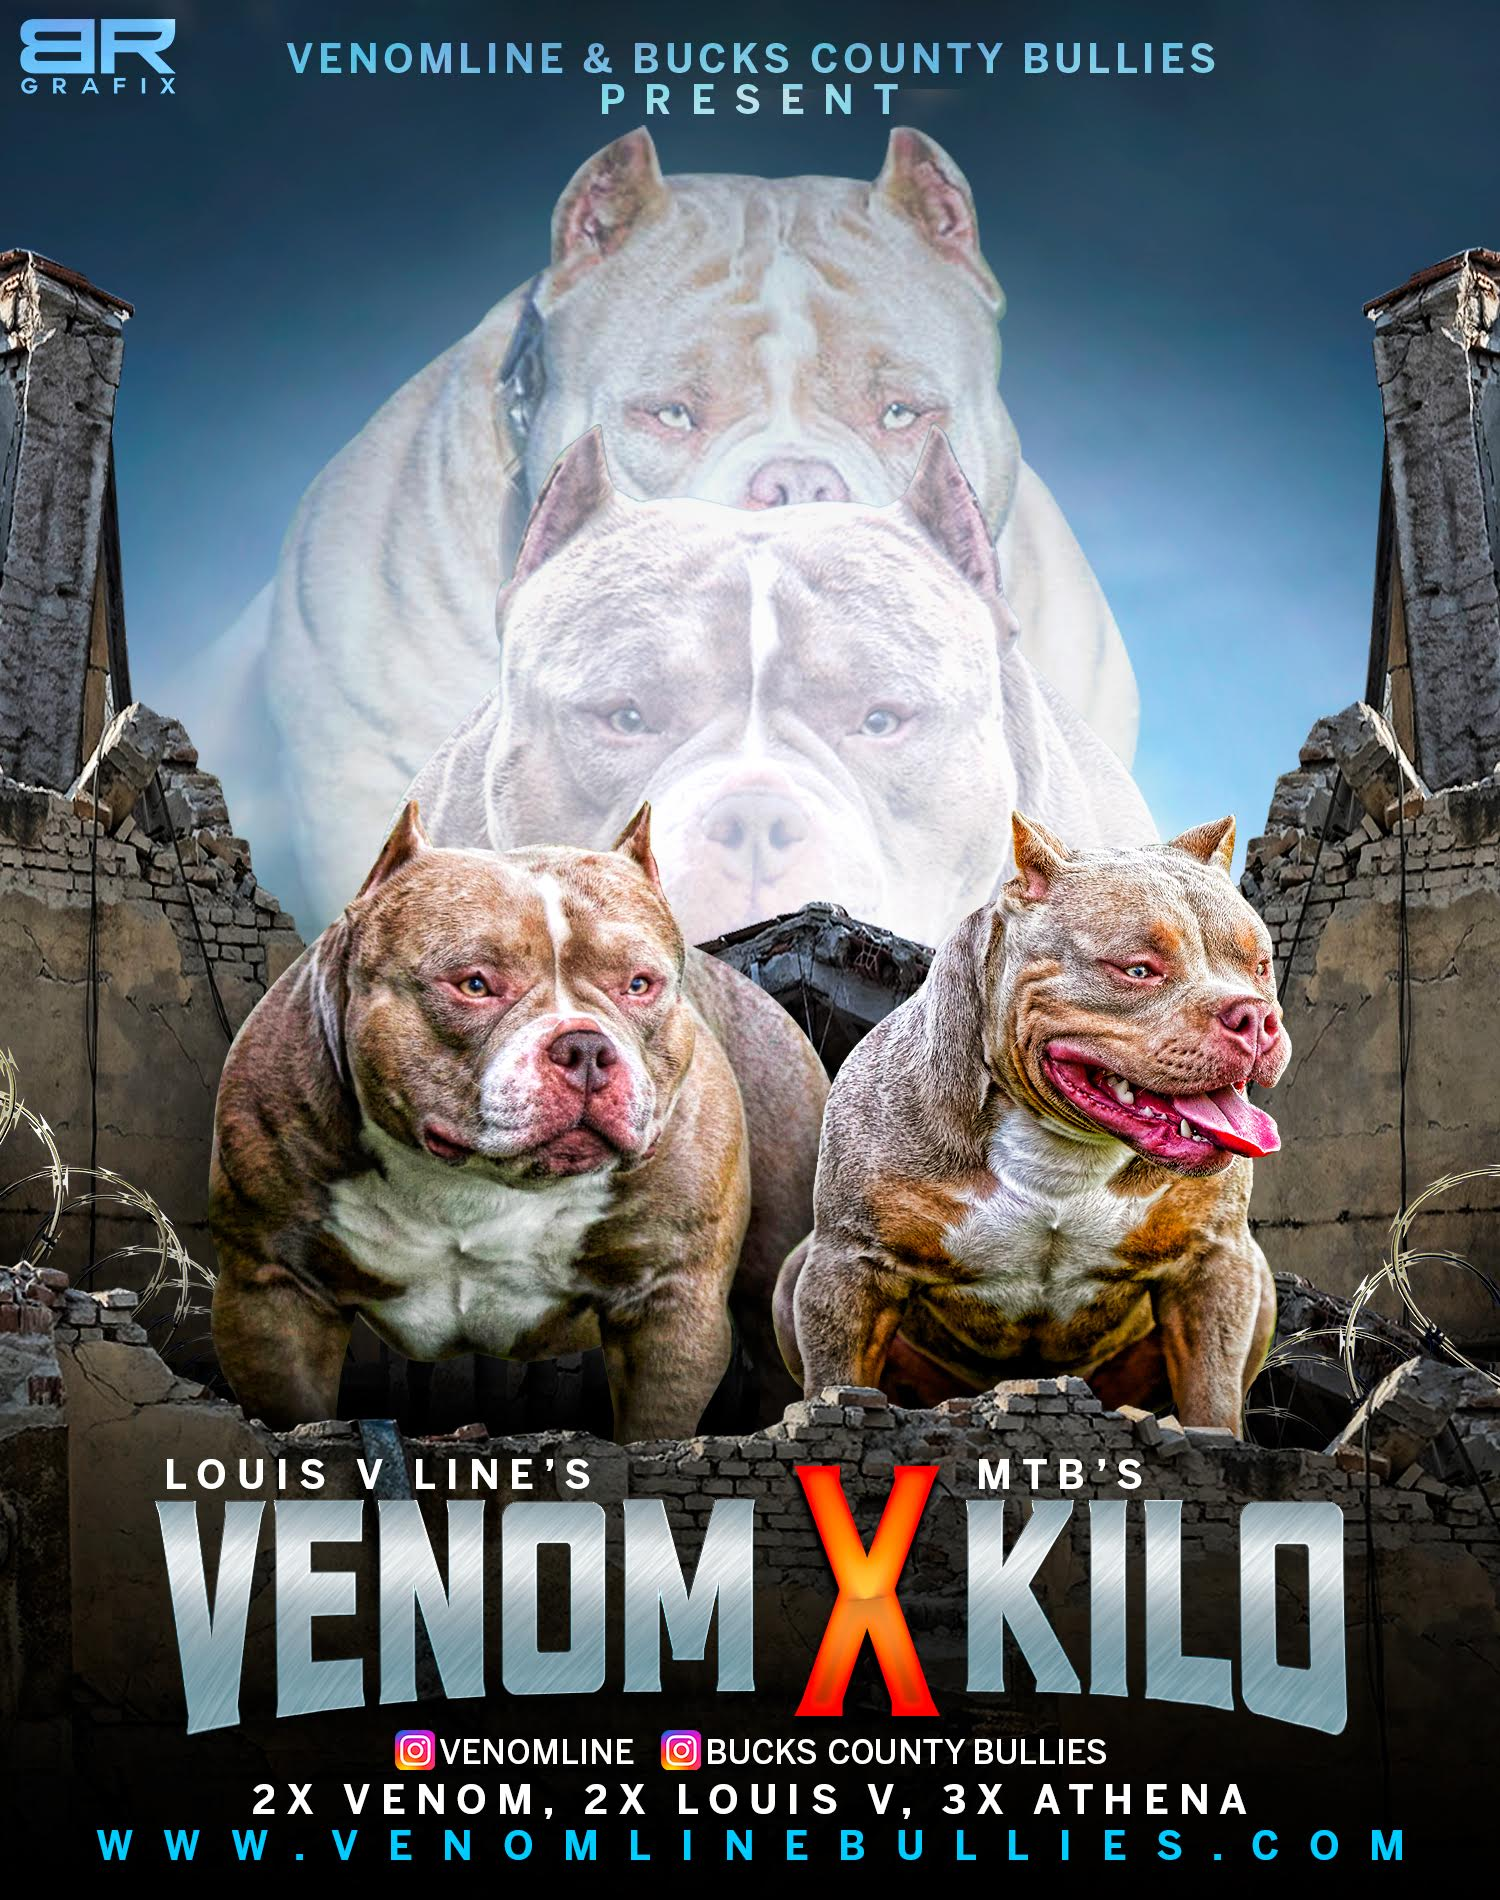 American Bully Kennels, Pocket Bully Kennels, Pocket Bully Breeders, Pocket Bully Kennels, Best Pocket Bully Breeders, Best Pocket Bully Kennels, Top Pocket Bully Studs, Venomline, ABKC Champions, Pocket American Bully, Pocket Bully, Micro Bully, Extreme Bully, Exotic Bully, Puppies for Sale